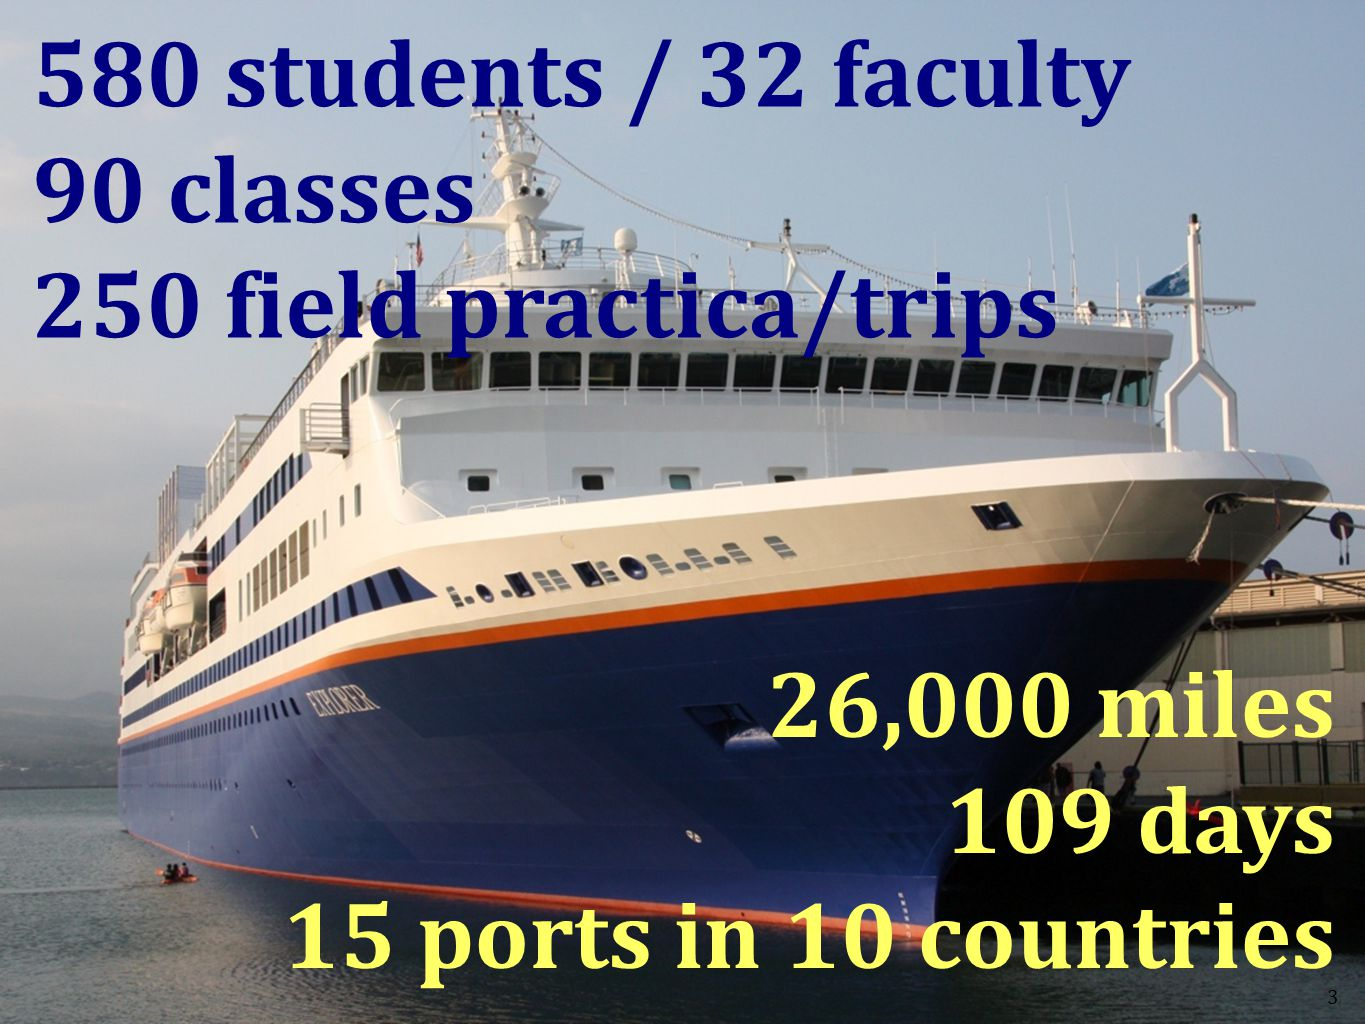 3 3 26,000 miles 109 days 15 ports in 10 countries 580 students / 32 faculty 90 classes 250 field practica/trips